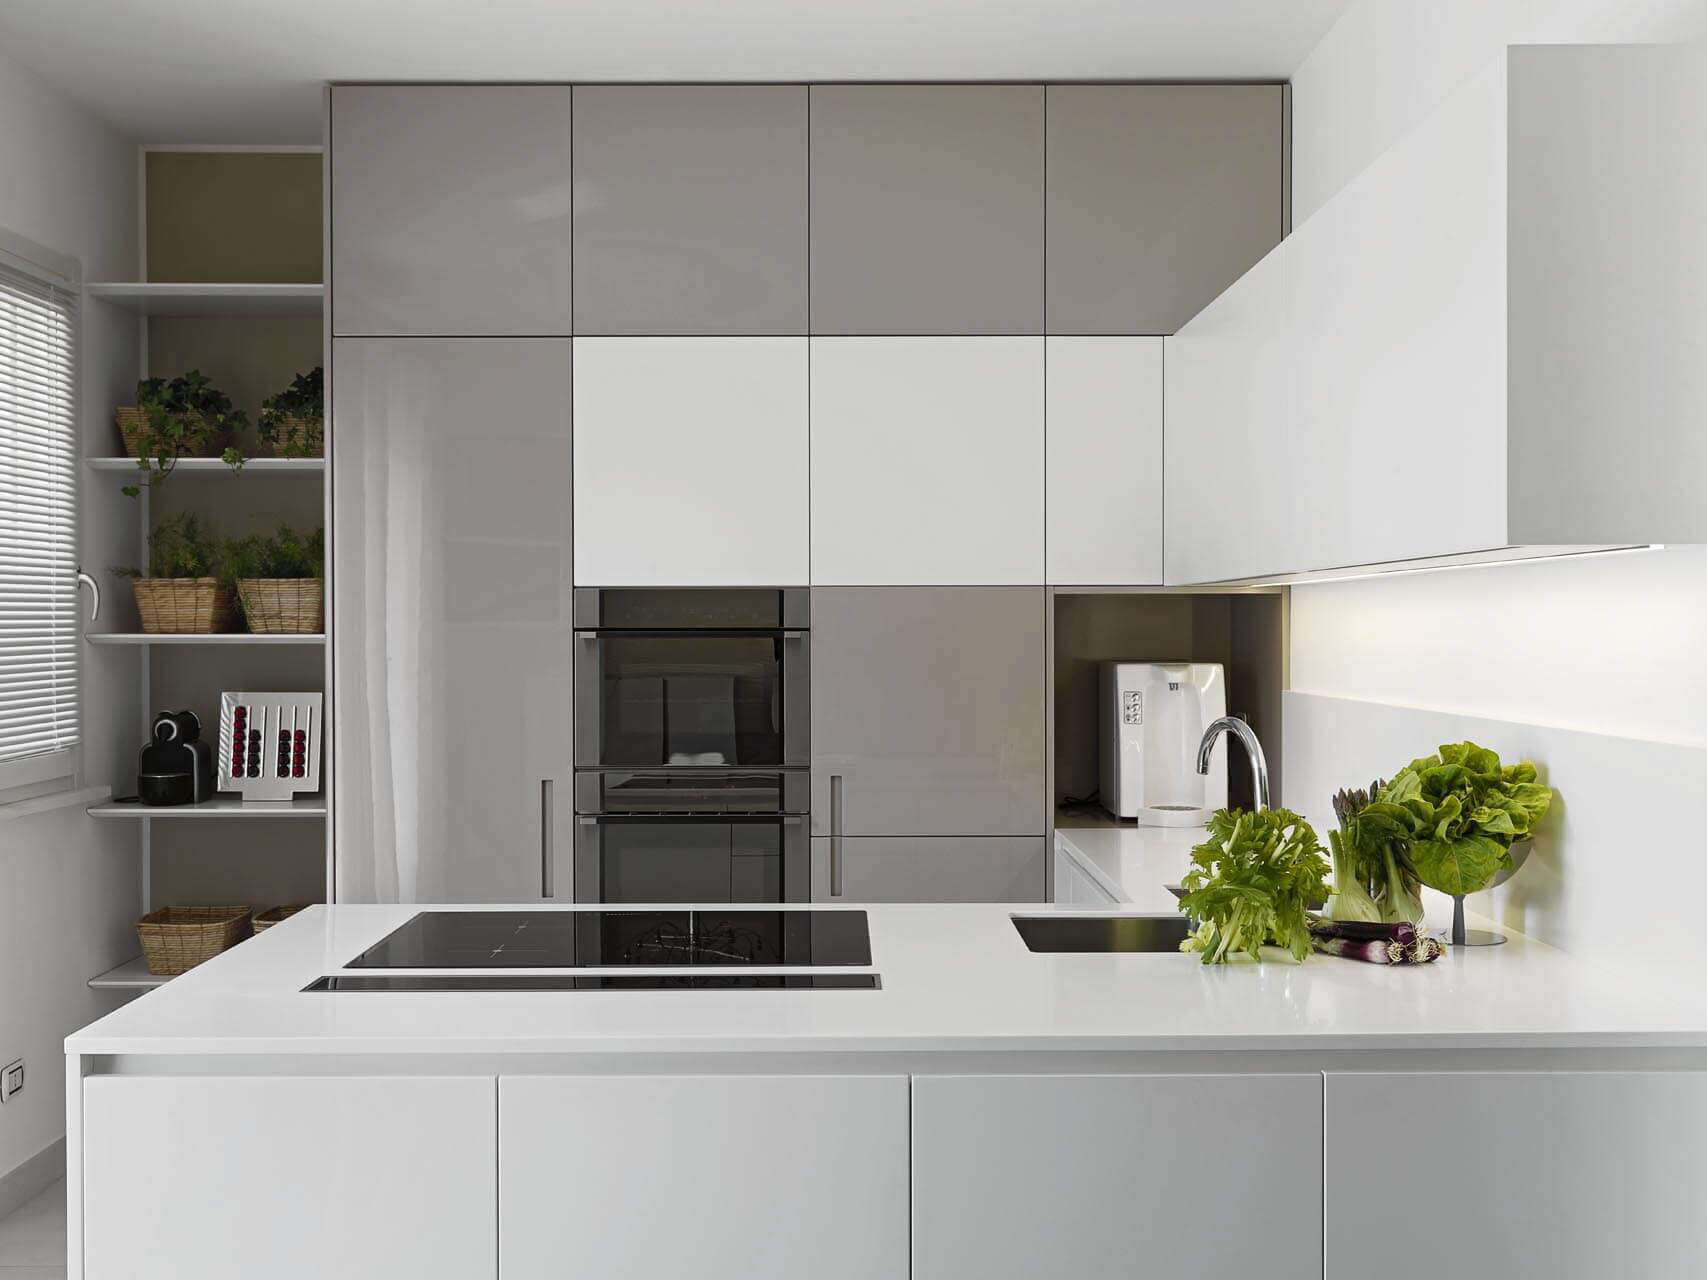 Modern kitchen in grey and white palette with fresh herbs on the counter top